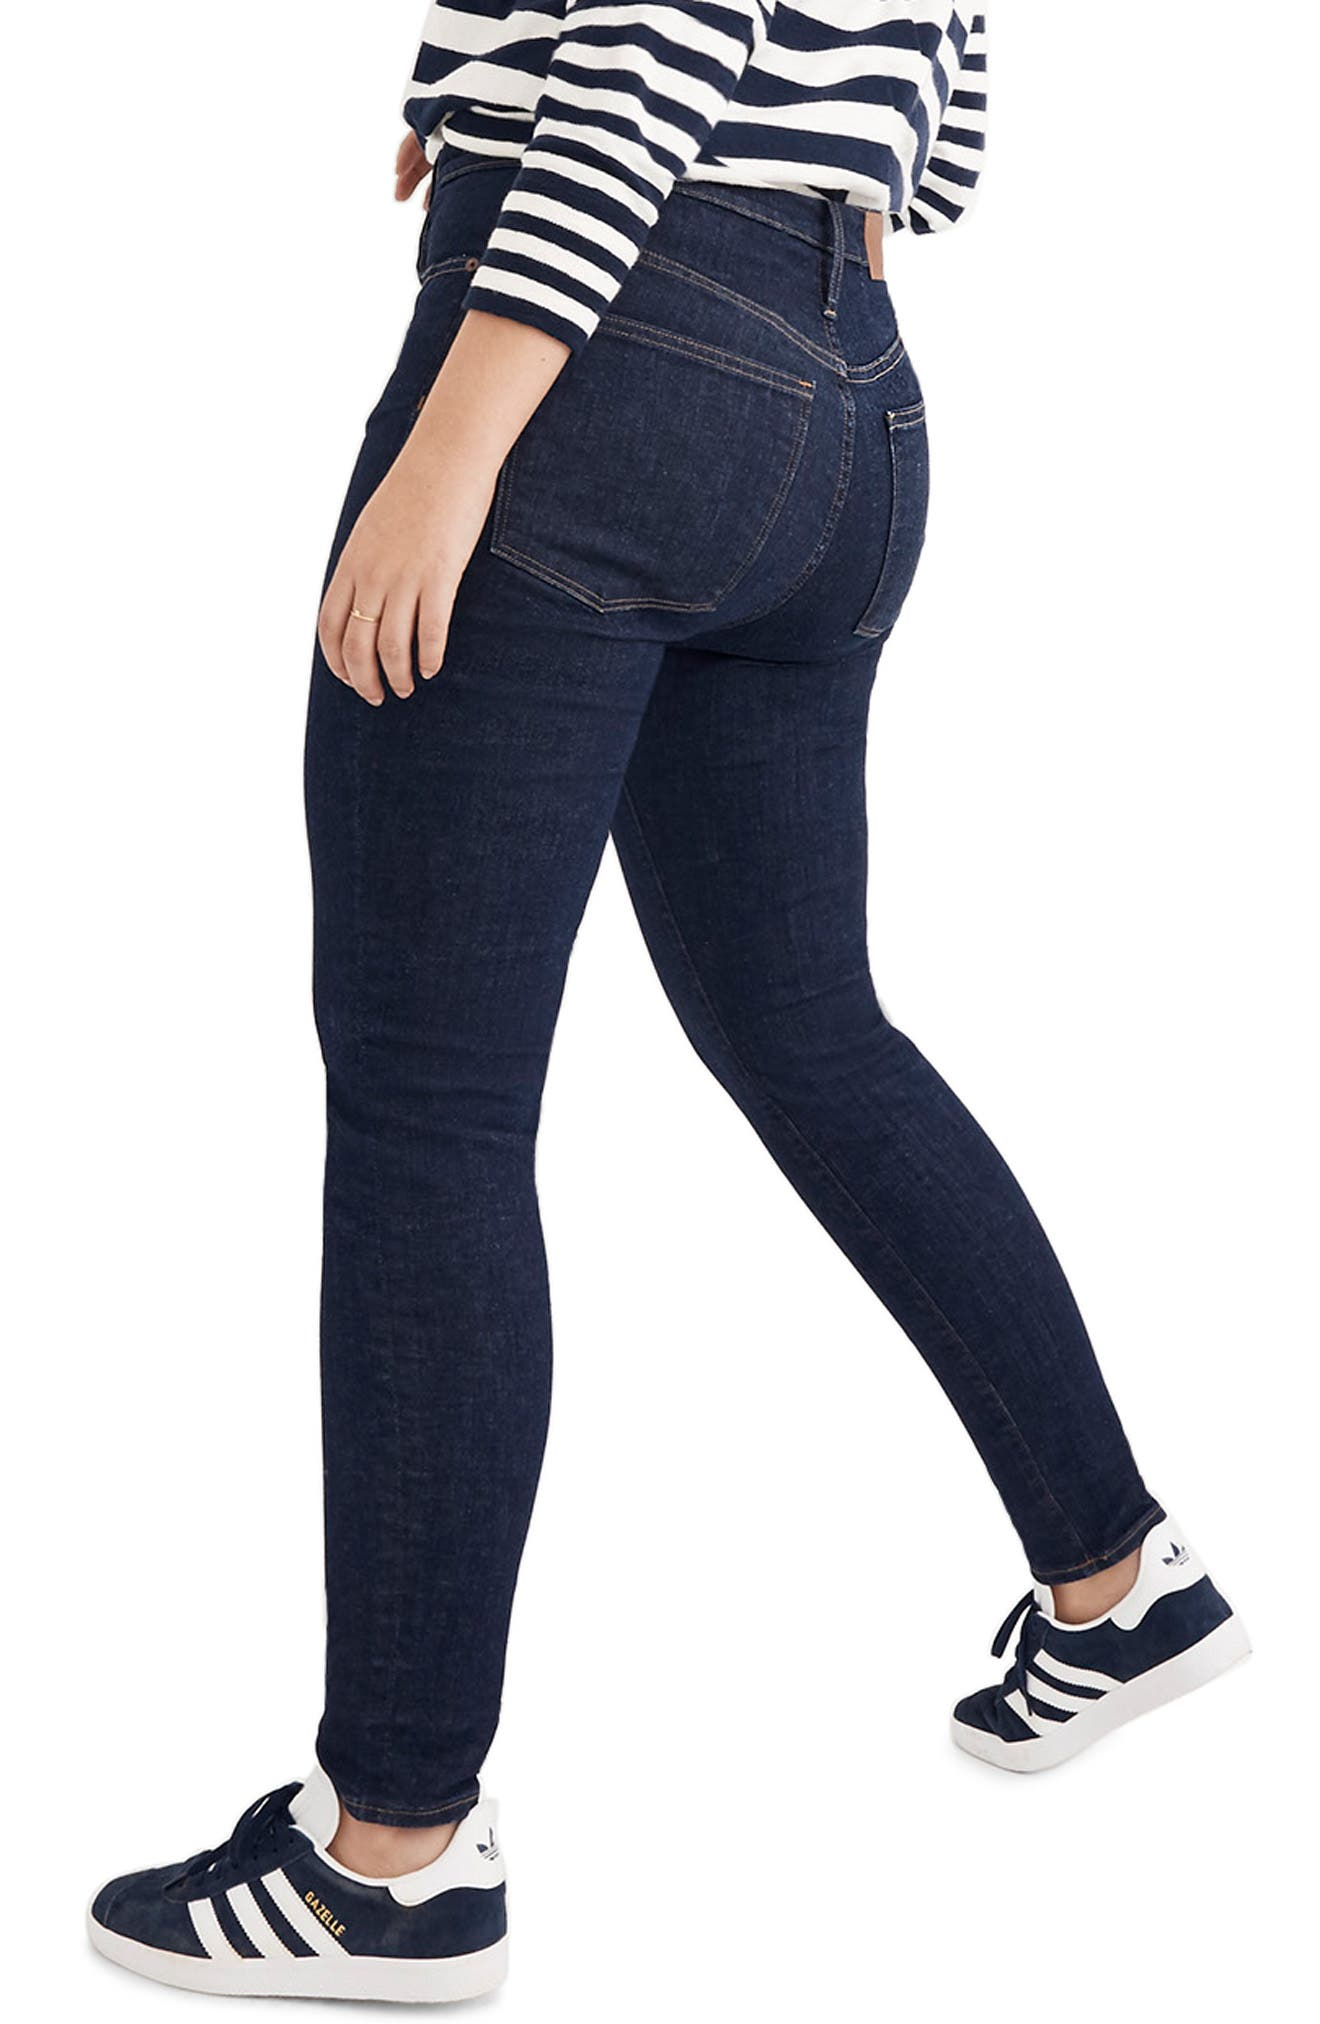 Curvy High Waist Skinny Jeans,                             Alternate thumbnail 9, color,                             LUCILLE WASH